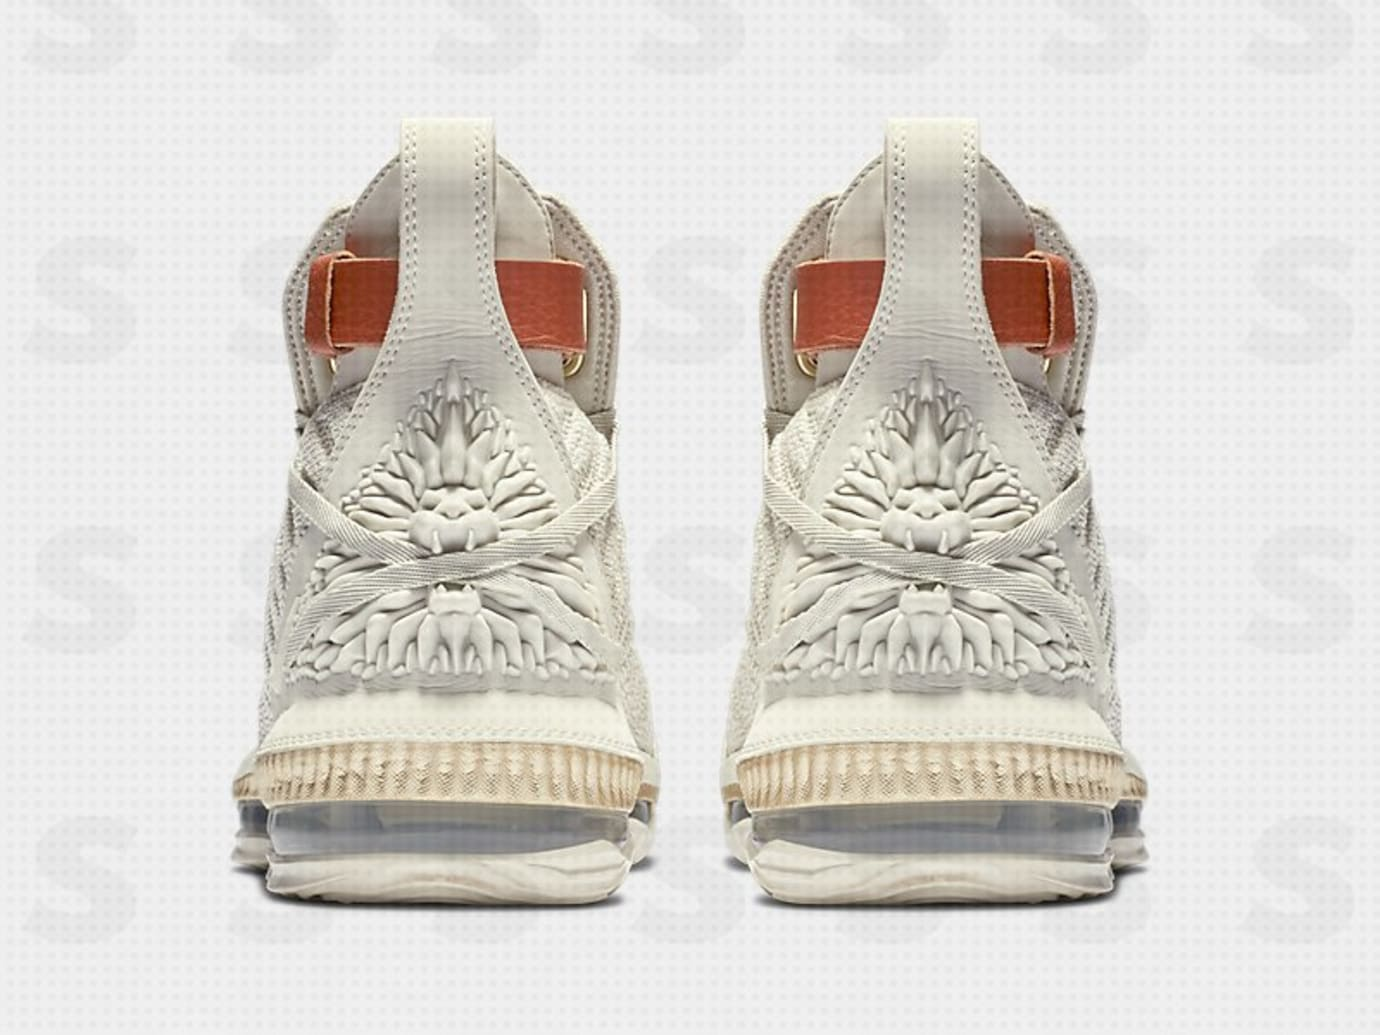 separation shoes c43eb 1d51c Nike LeBron 16 XVI HFR Harlem's Fashion Row | Sole Collector